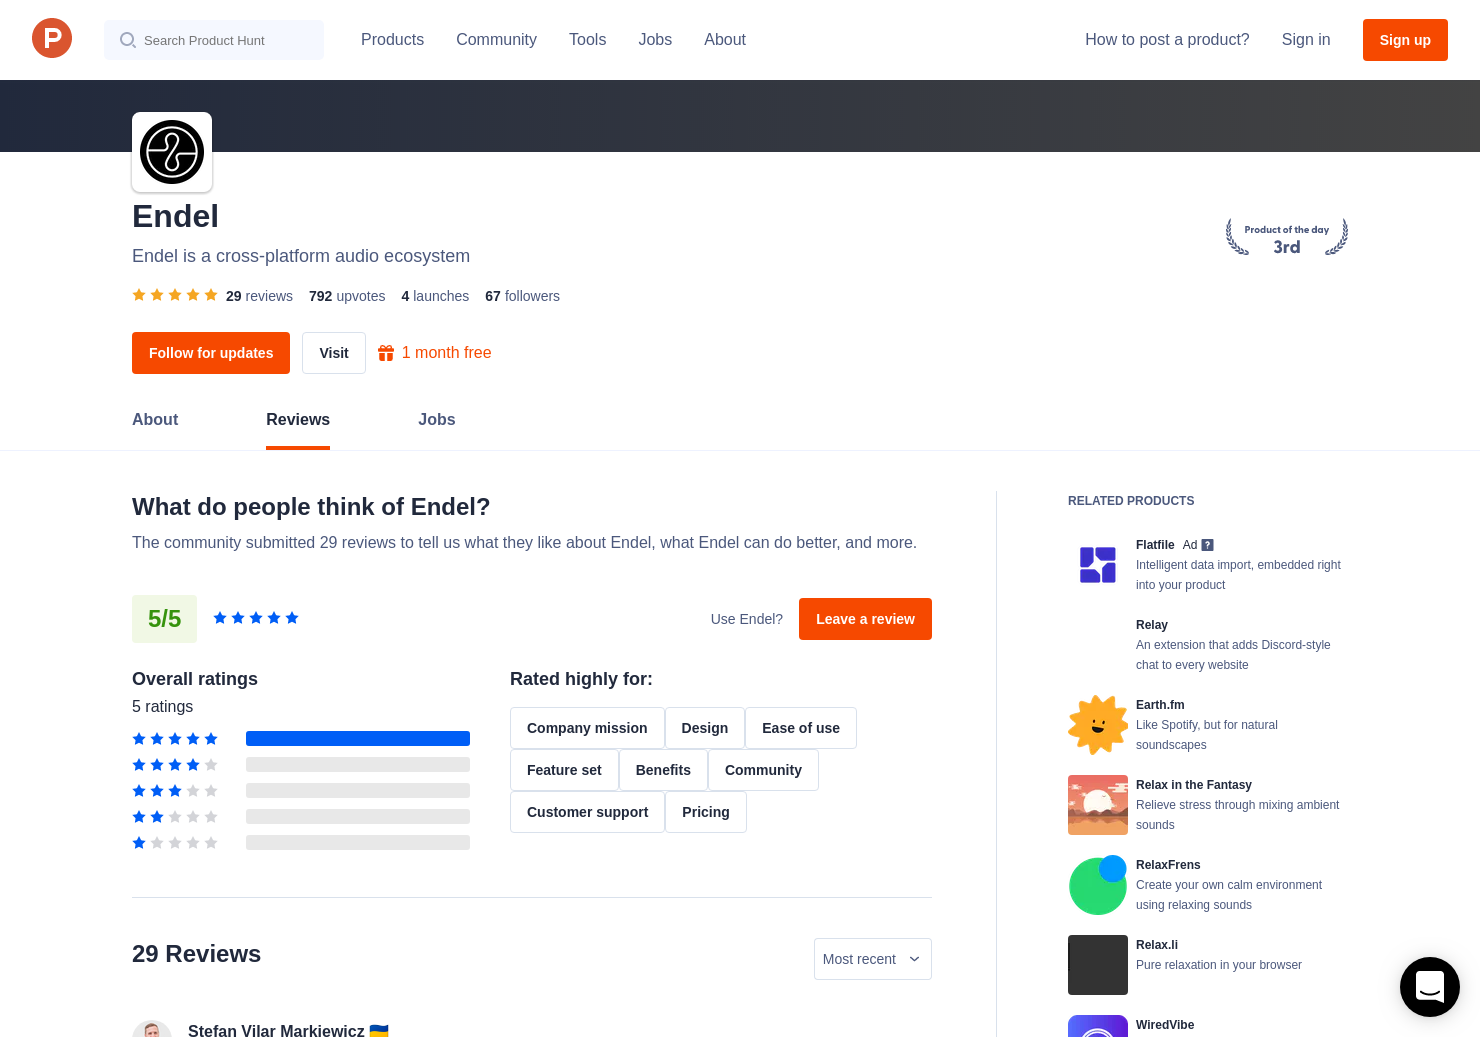 14 Endel Reviews - Pros, Cons and Rating | Product Hunt